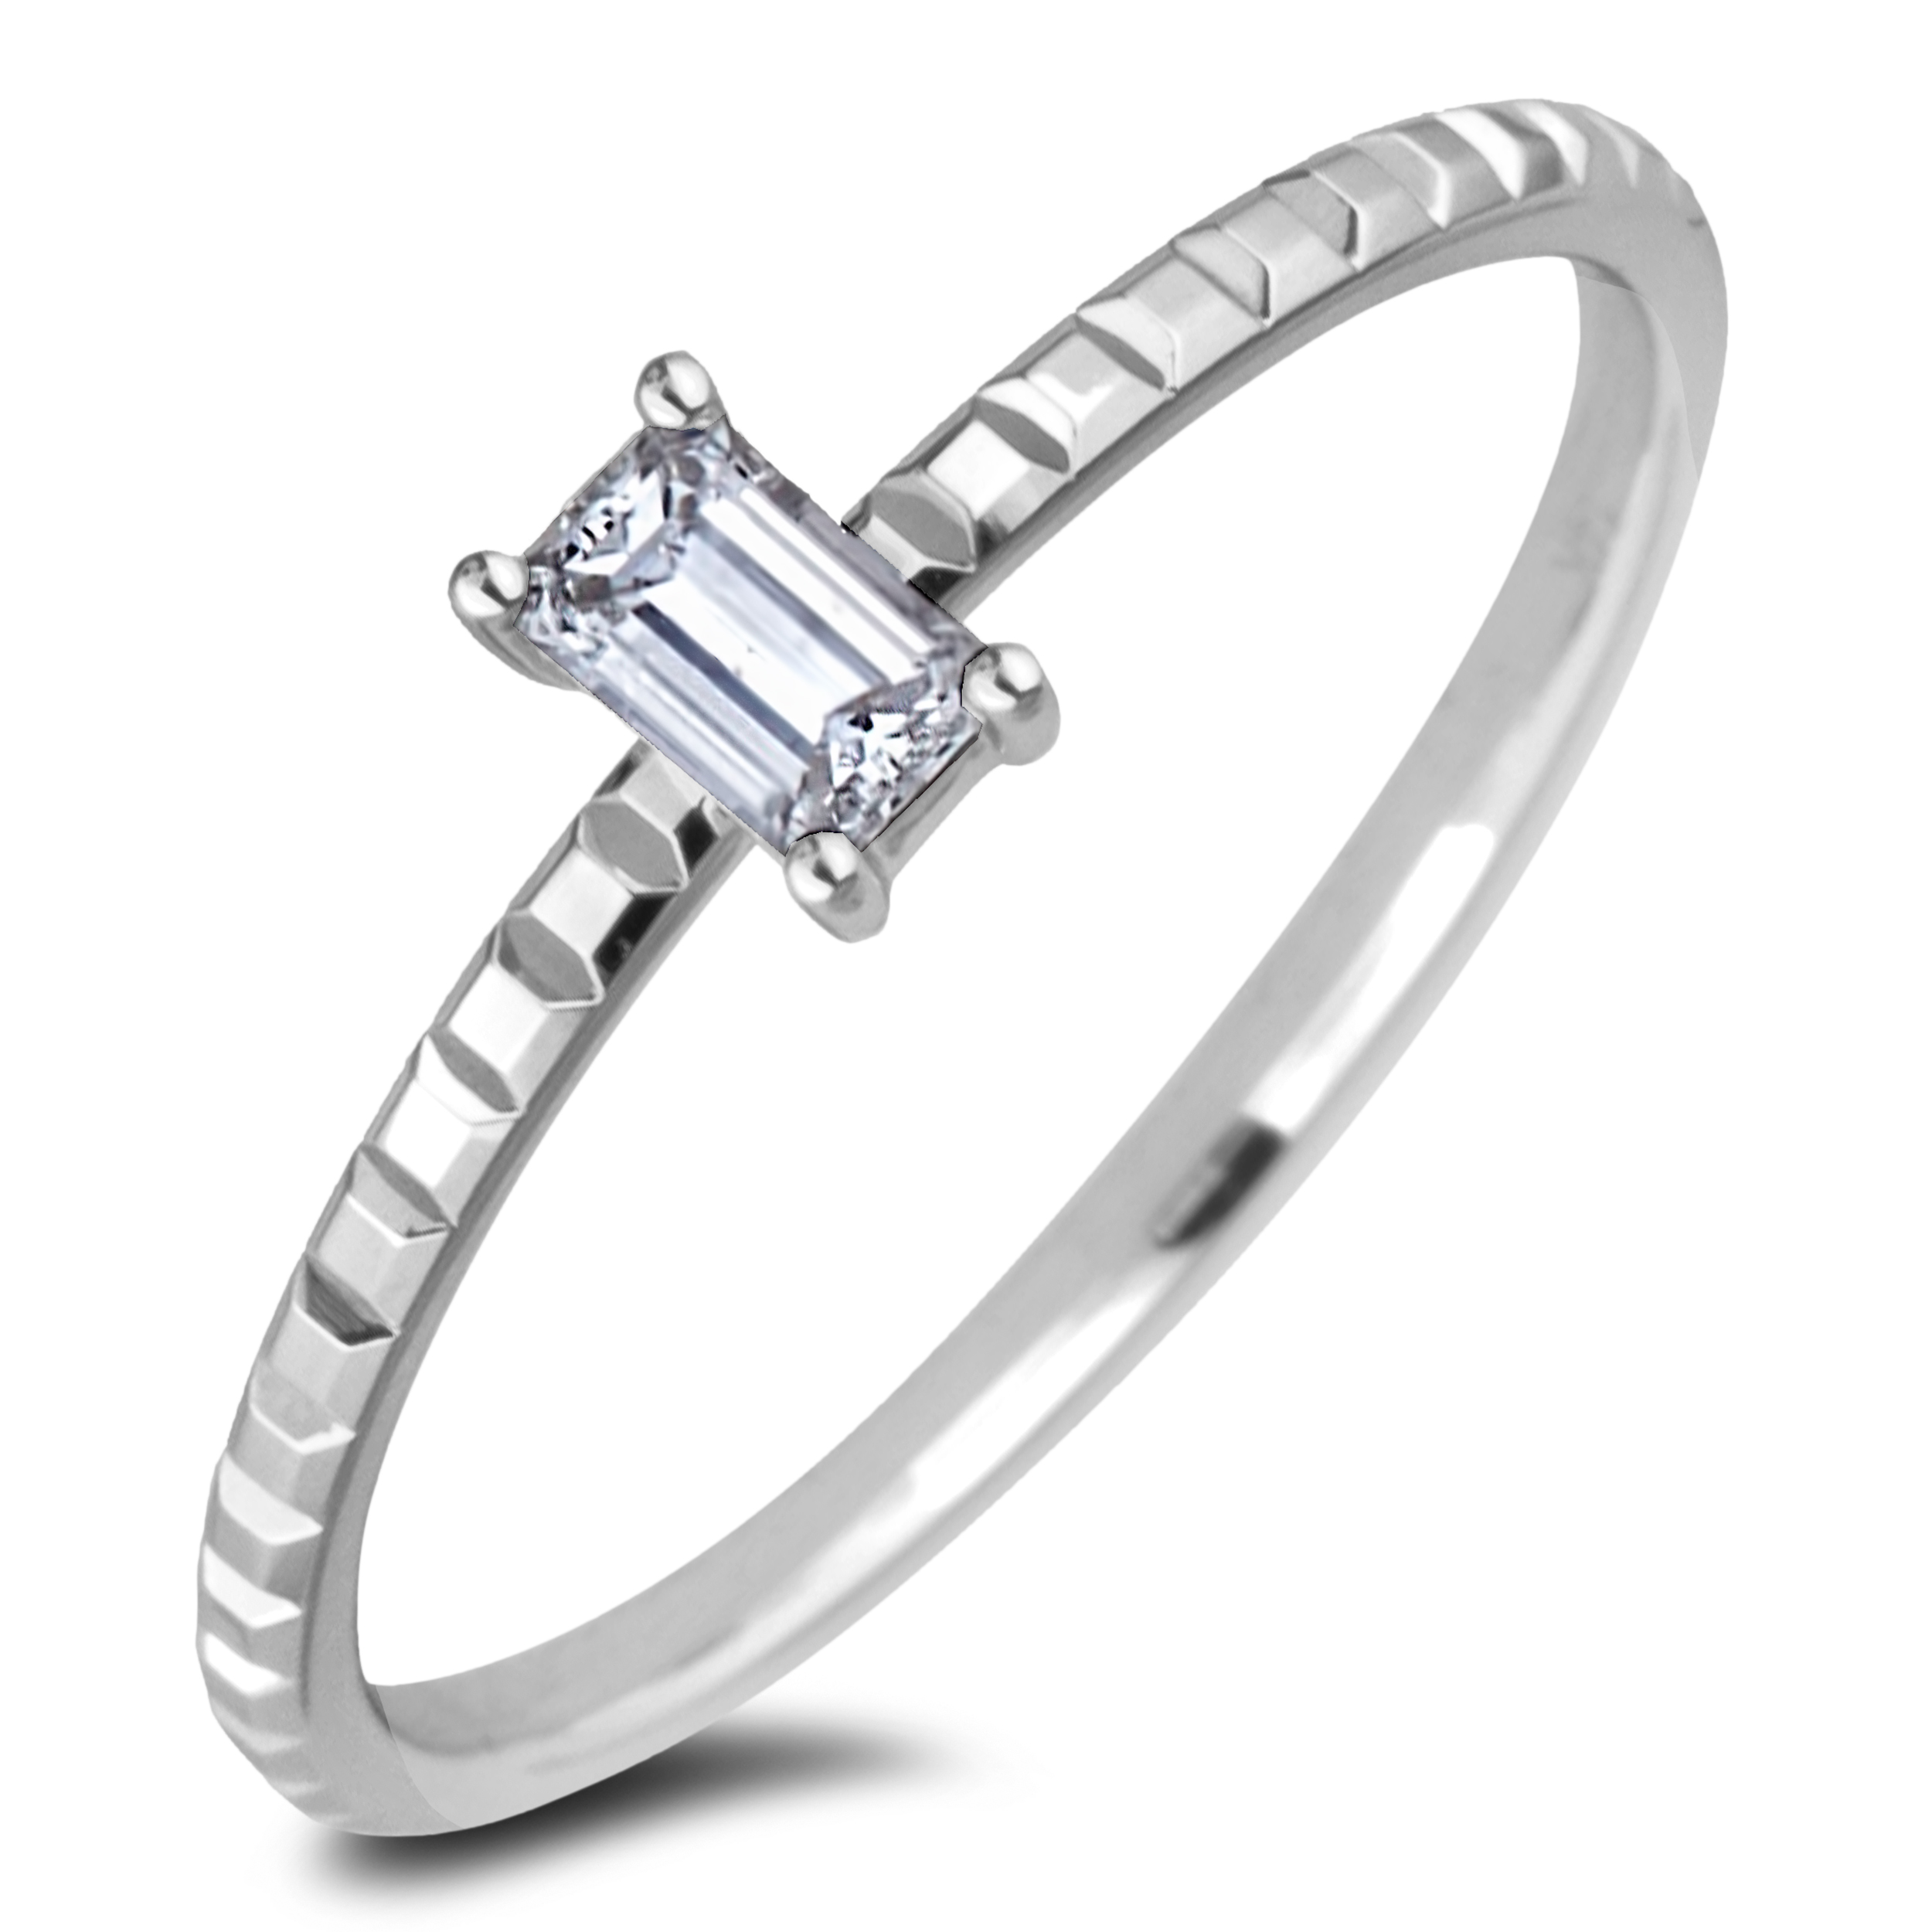 Diamond Solitaire Rings AFDR1013L213-F162 (Rings)